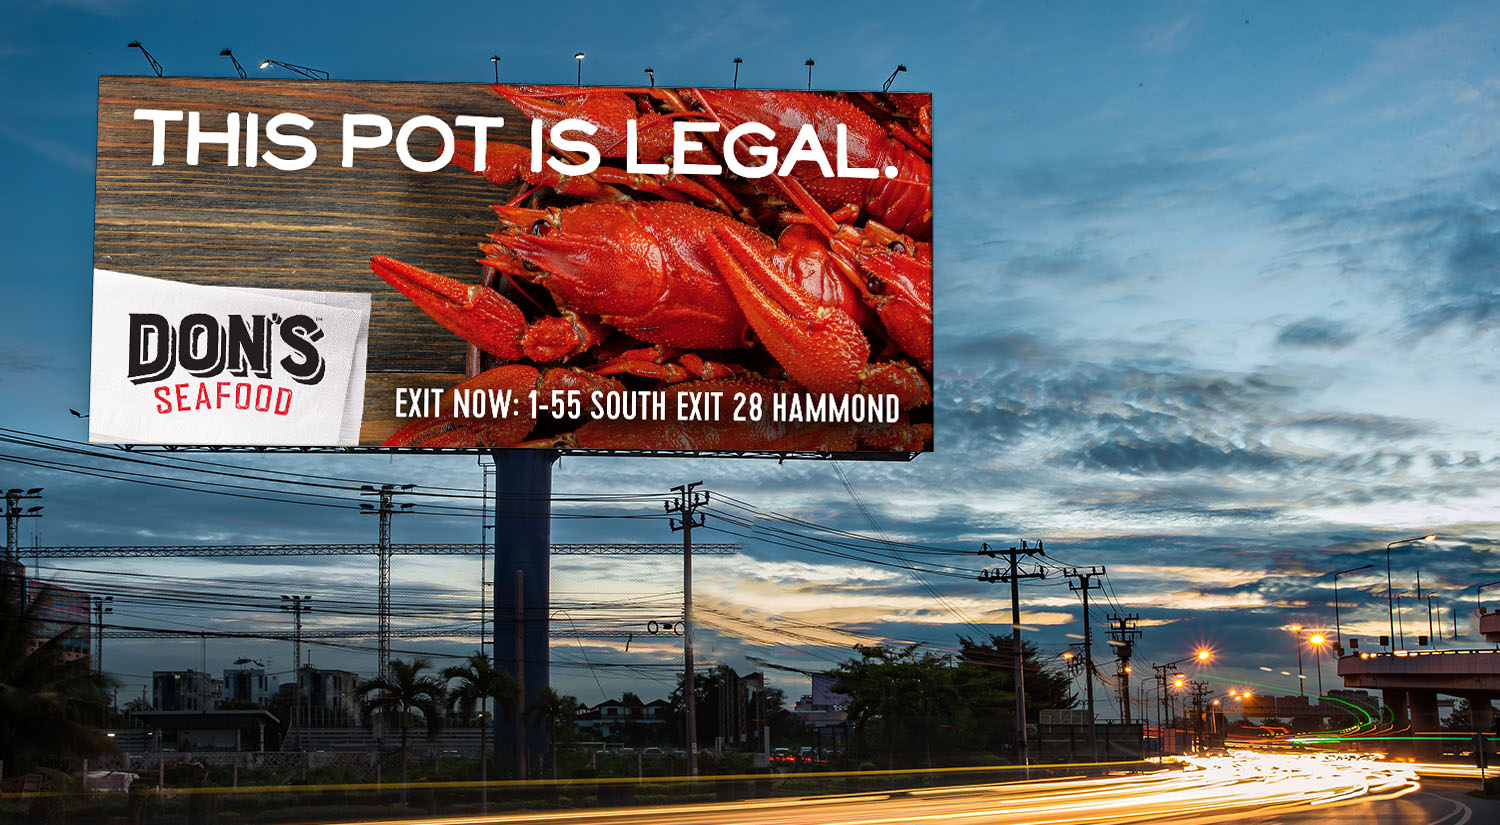 Don's Seafood | Billboard: This Pot is Legal